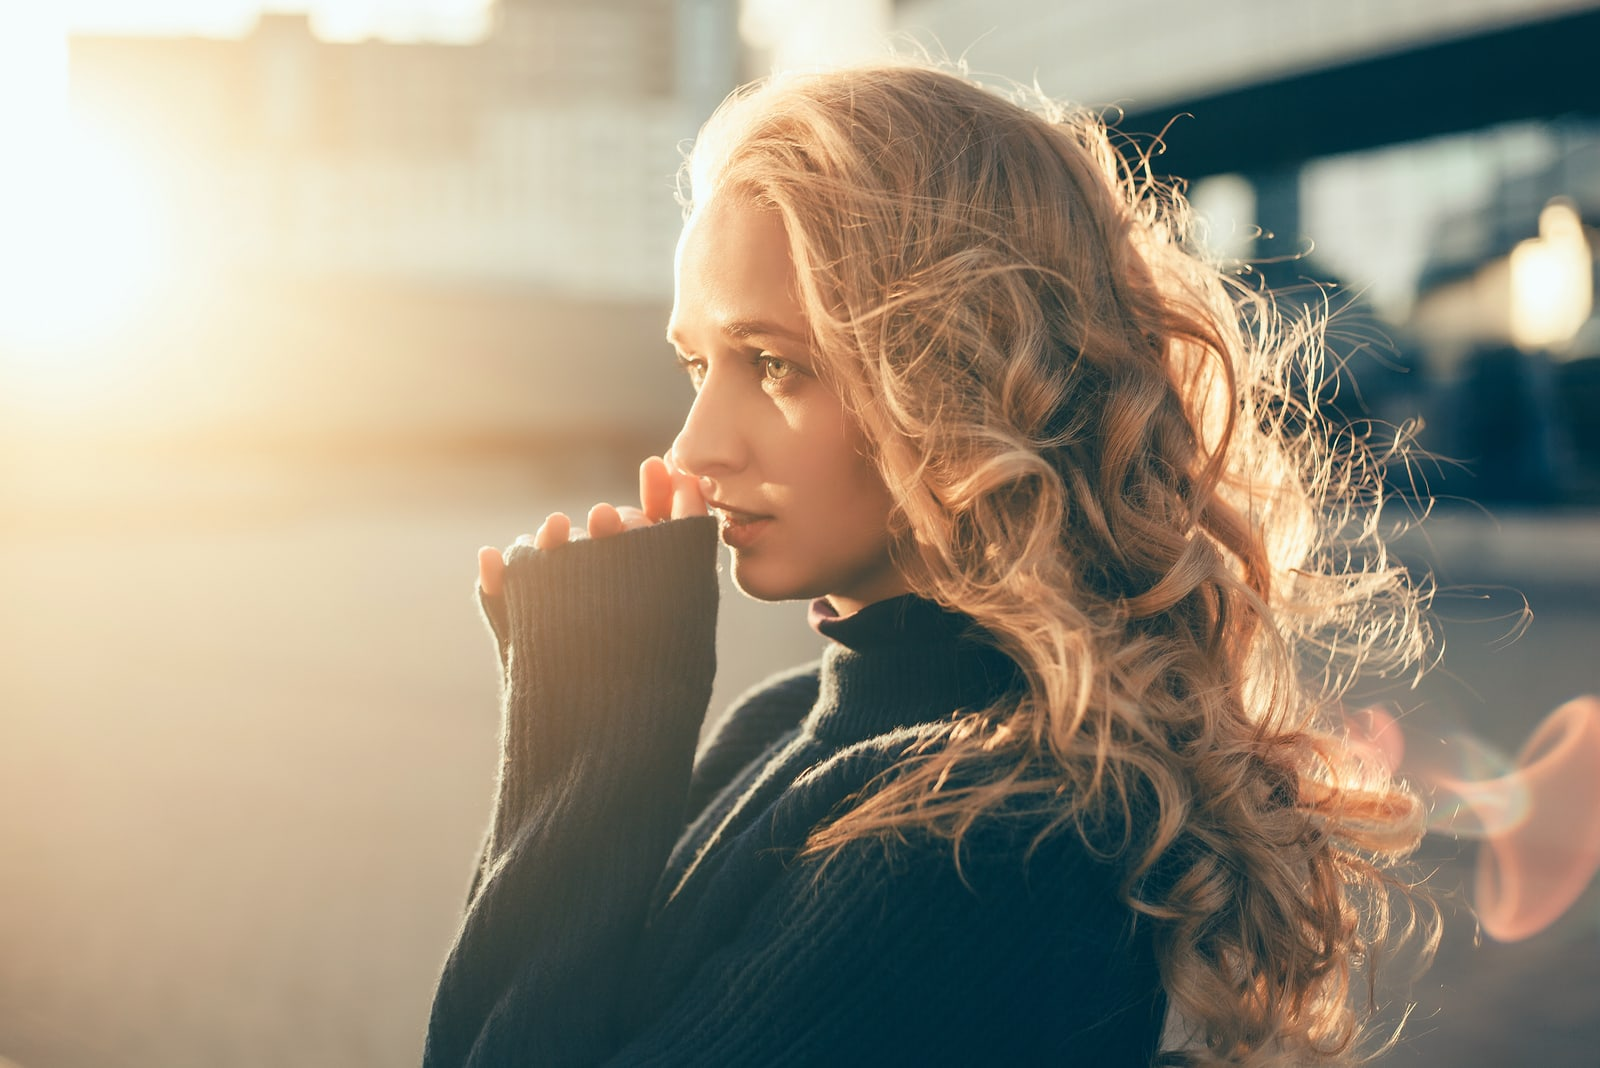 a woman with long blonde hair stands